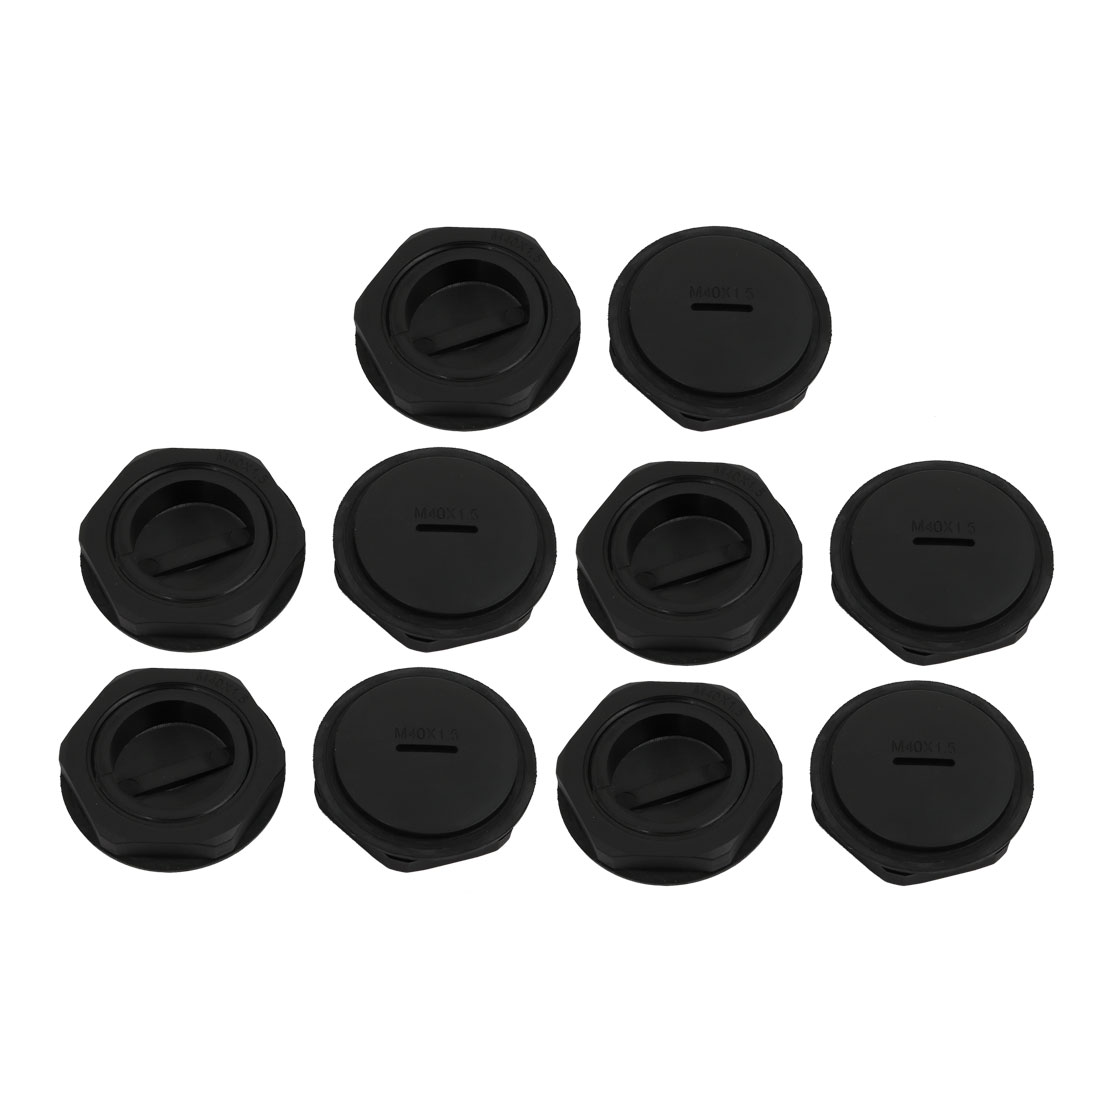 10pcs GLW-M40 Nylon Threaded Cable Gland Cap Round Screw-in Cover Black w Washer